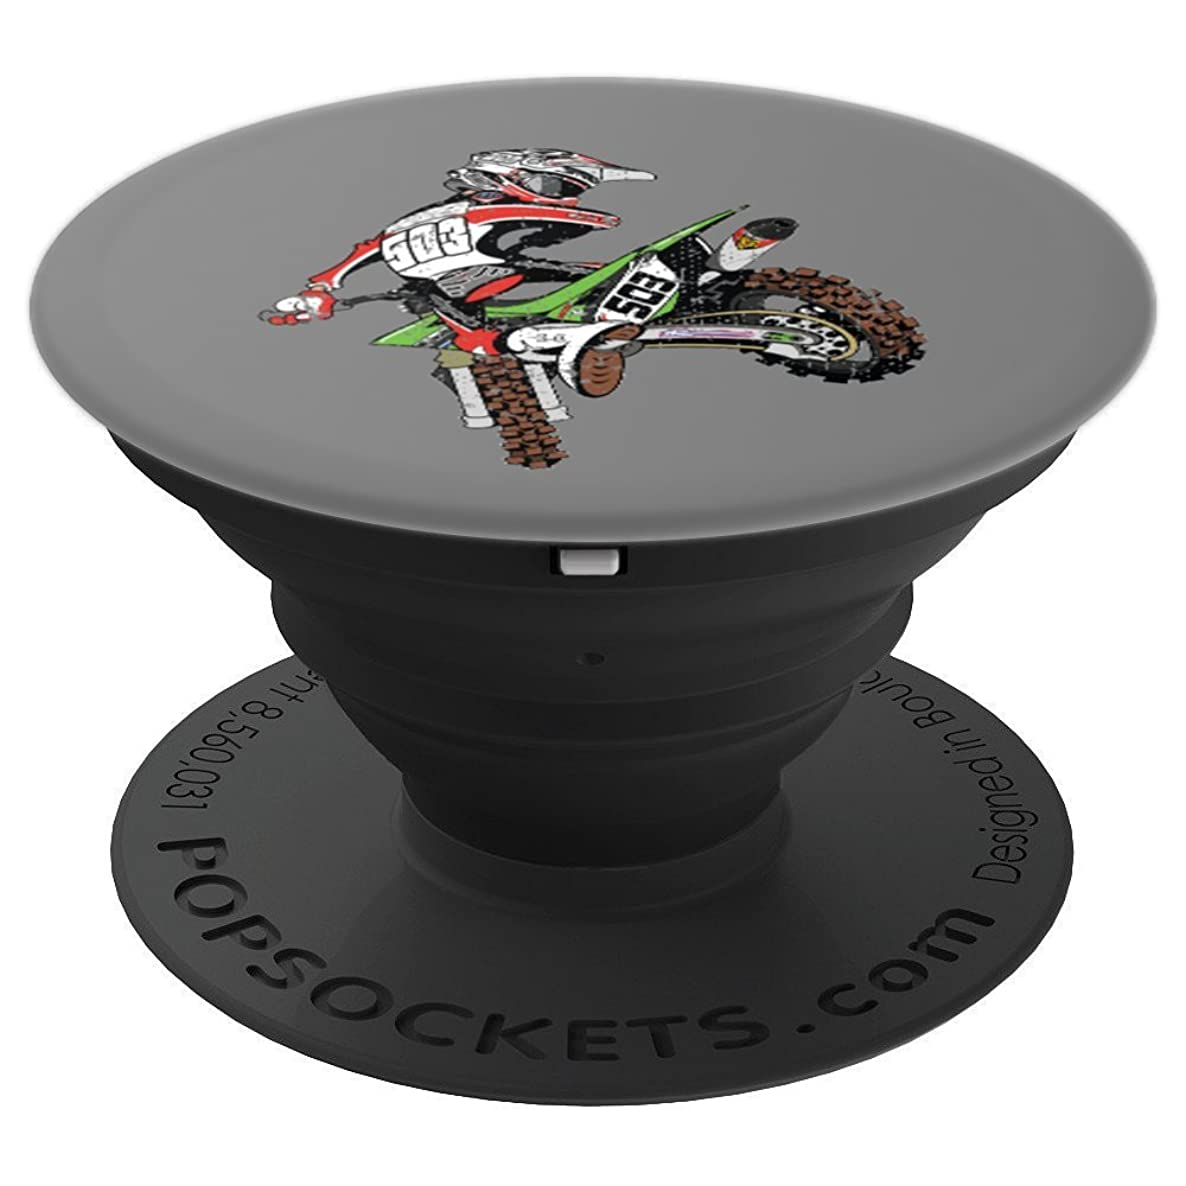 Dirt Bike Rider Motocross - PopSockets Grip and Stand for Phones and Tablets